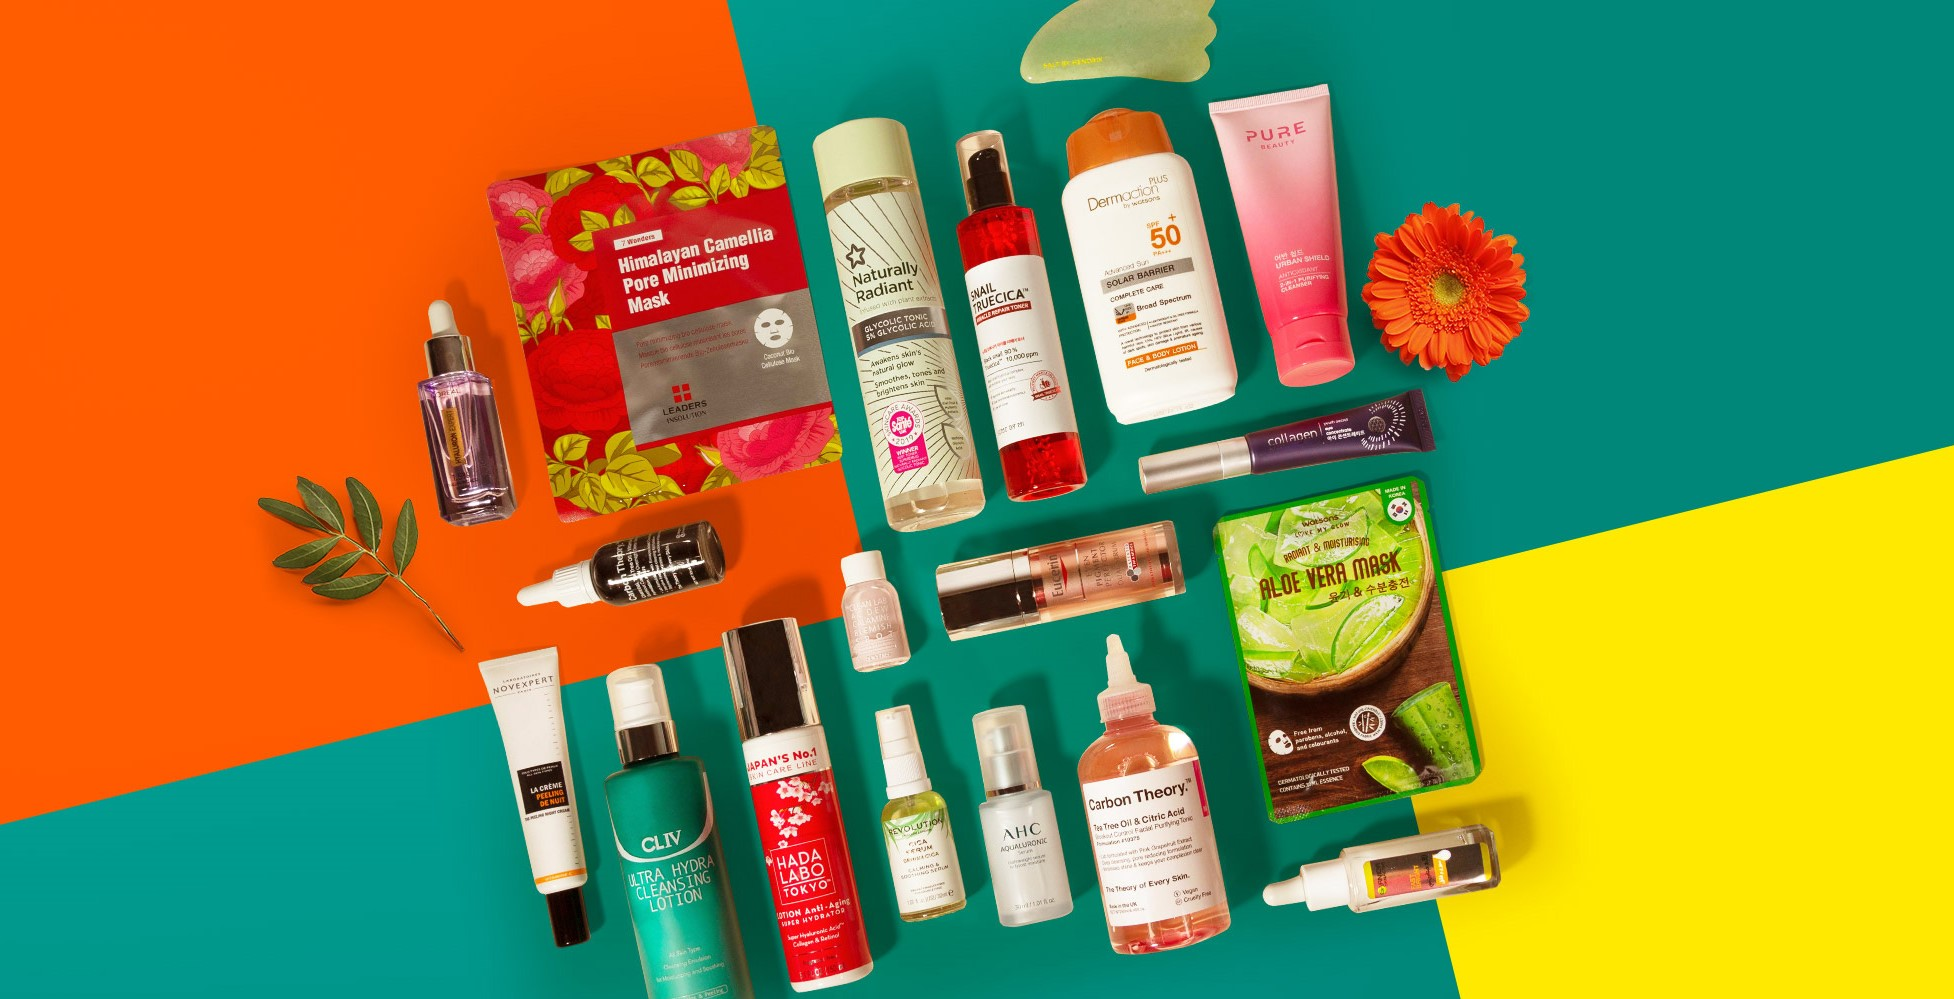 Skincare products coupons and deals in UAE